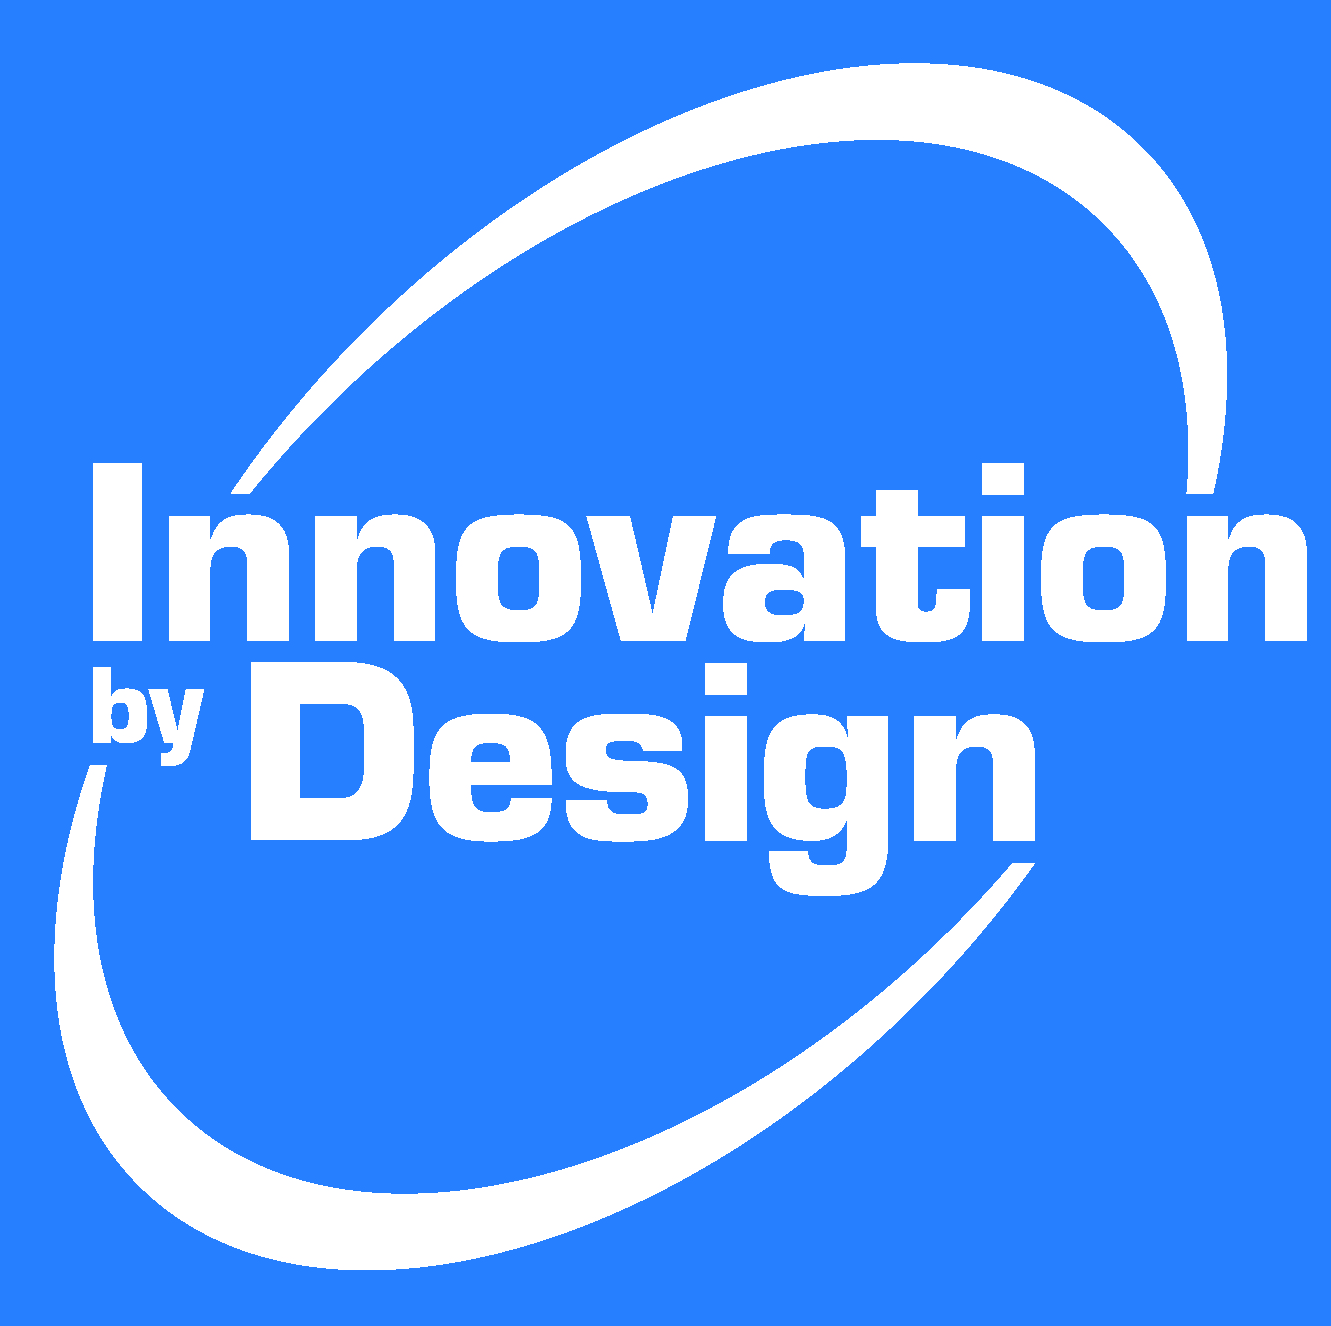 Shenoy innovation studio idc iit bombay innovation by for Innovation in product and industrial design